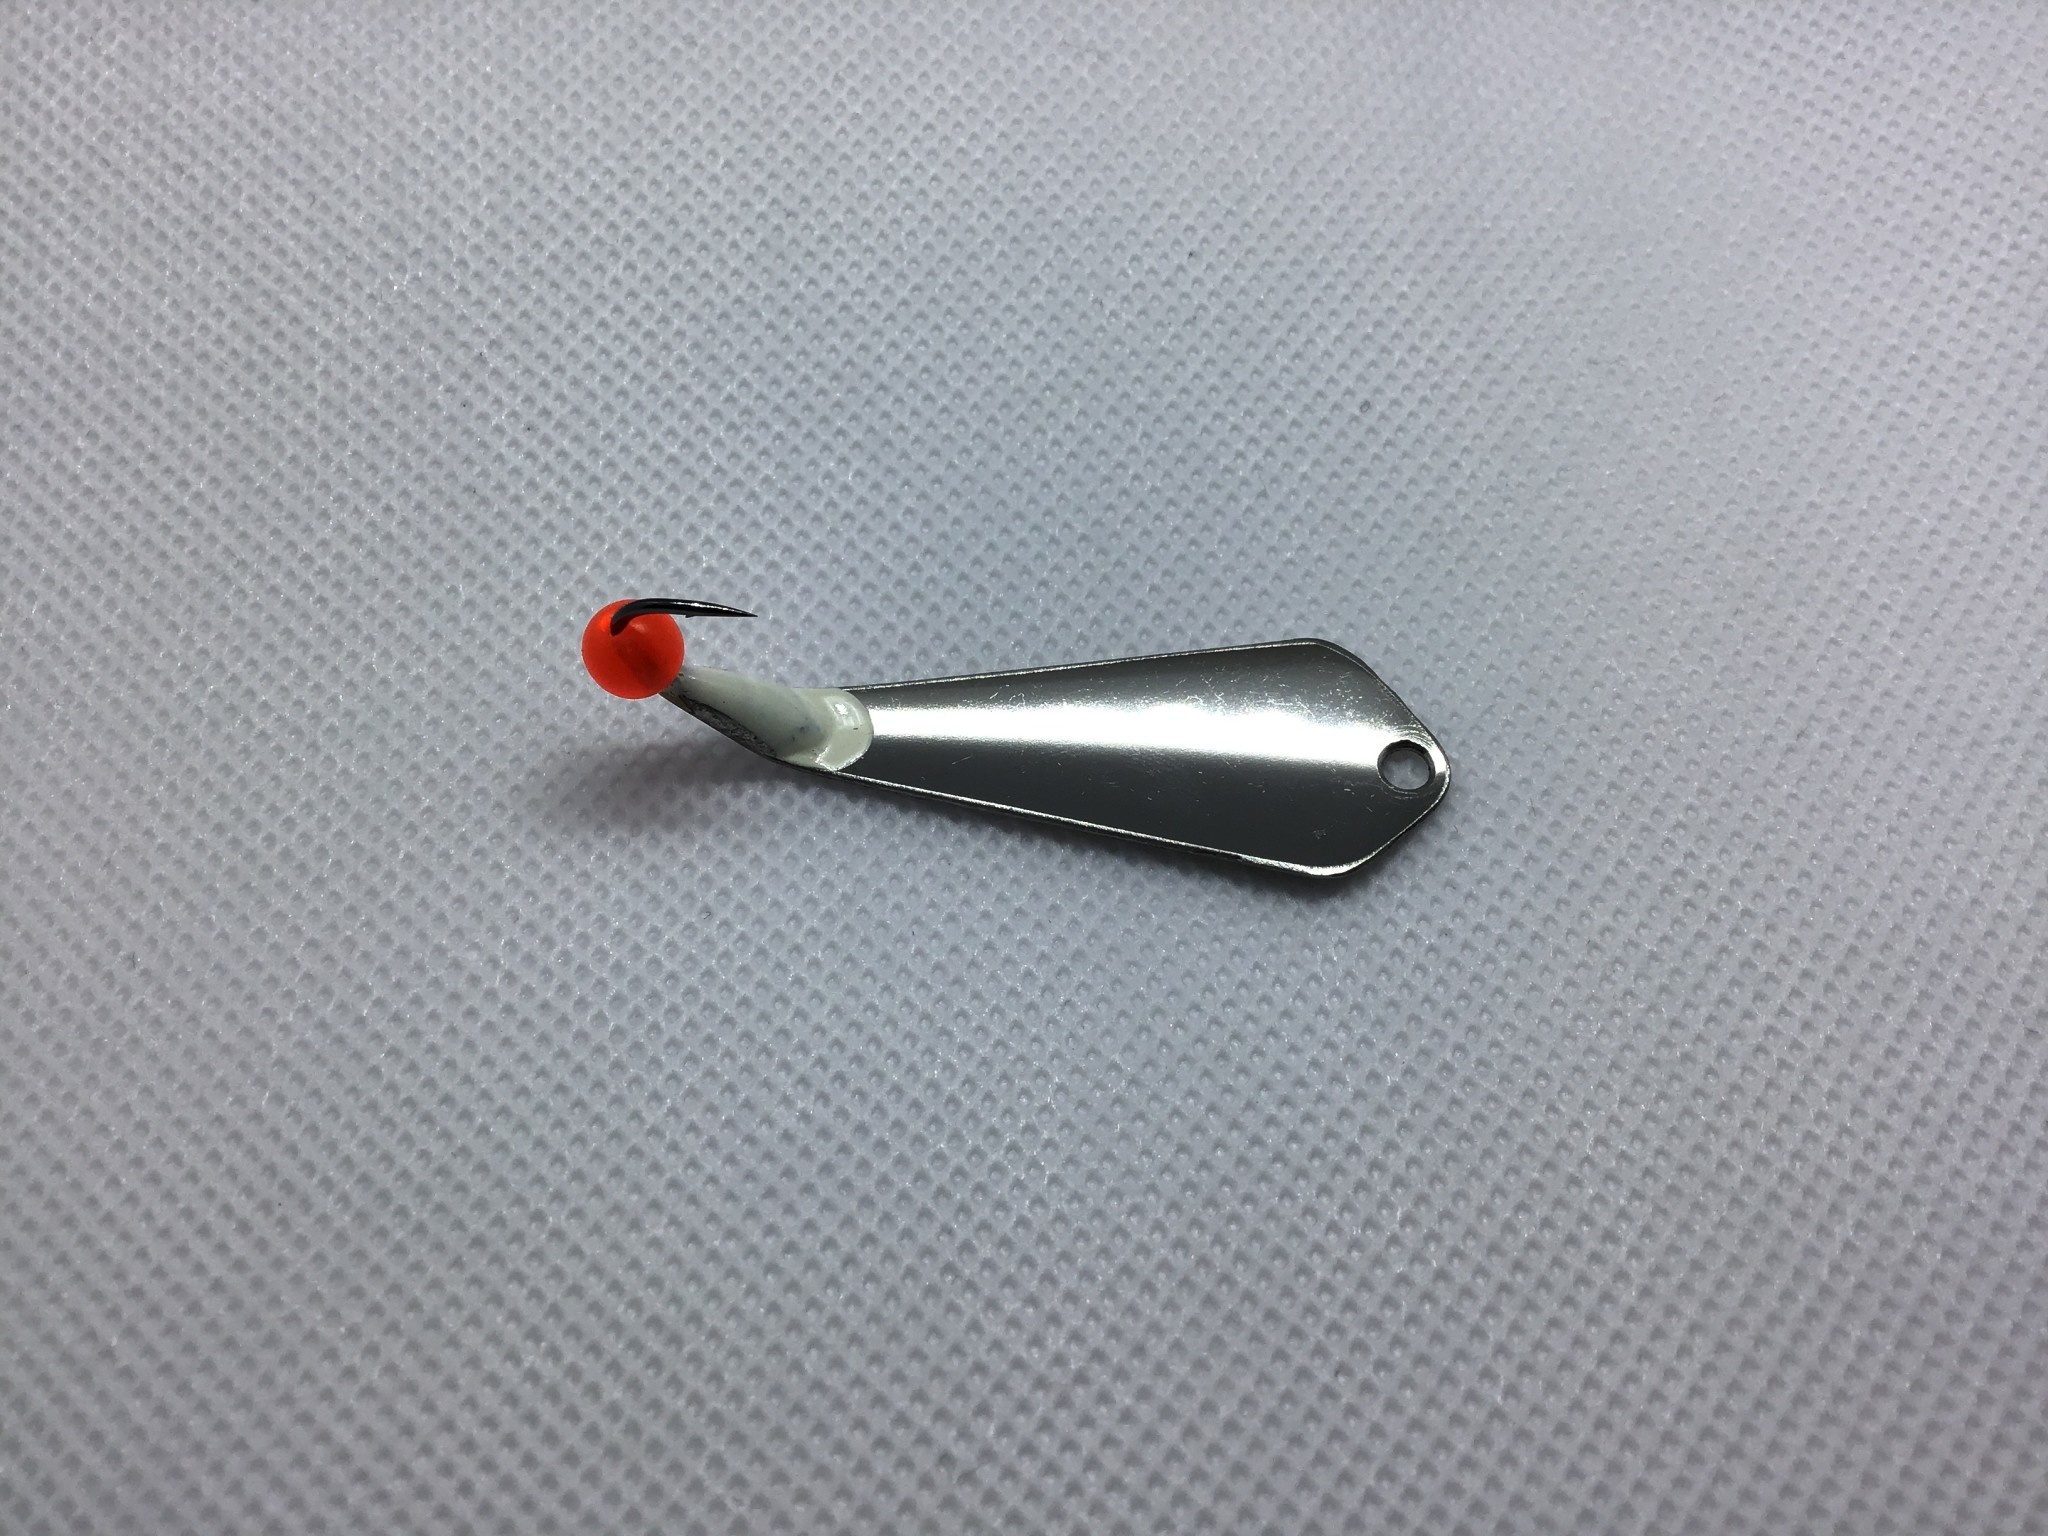 Slab Grabber 2' Kite Nickel Salmon